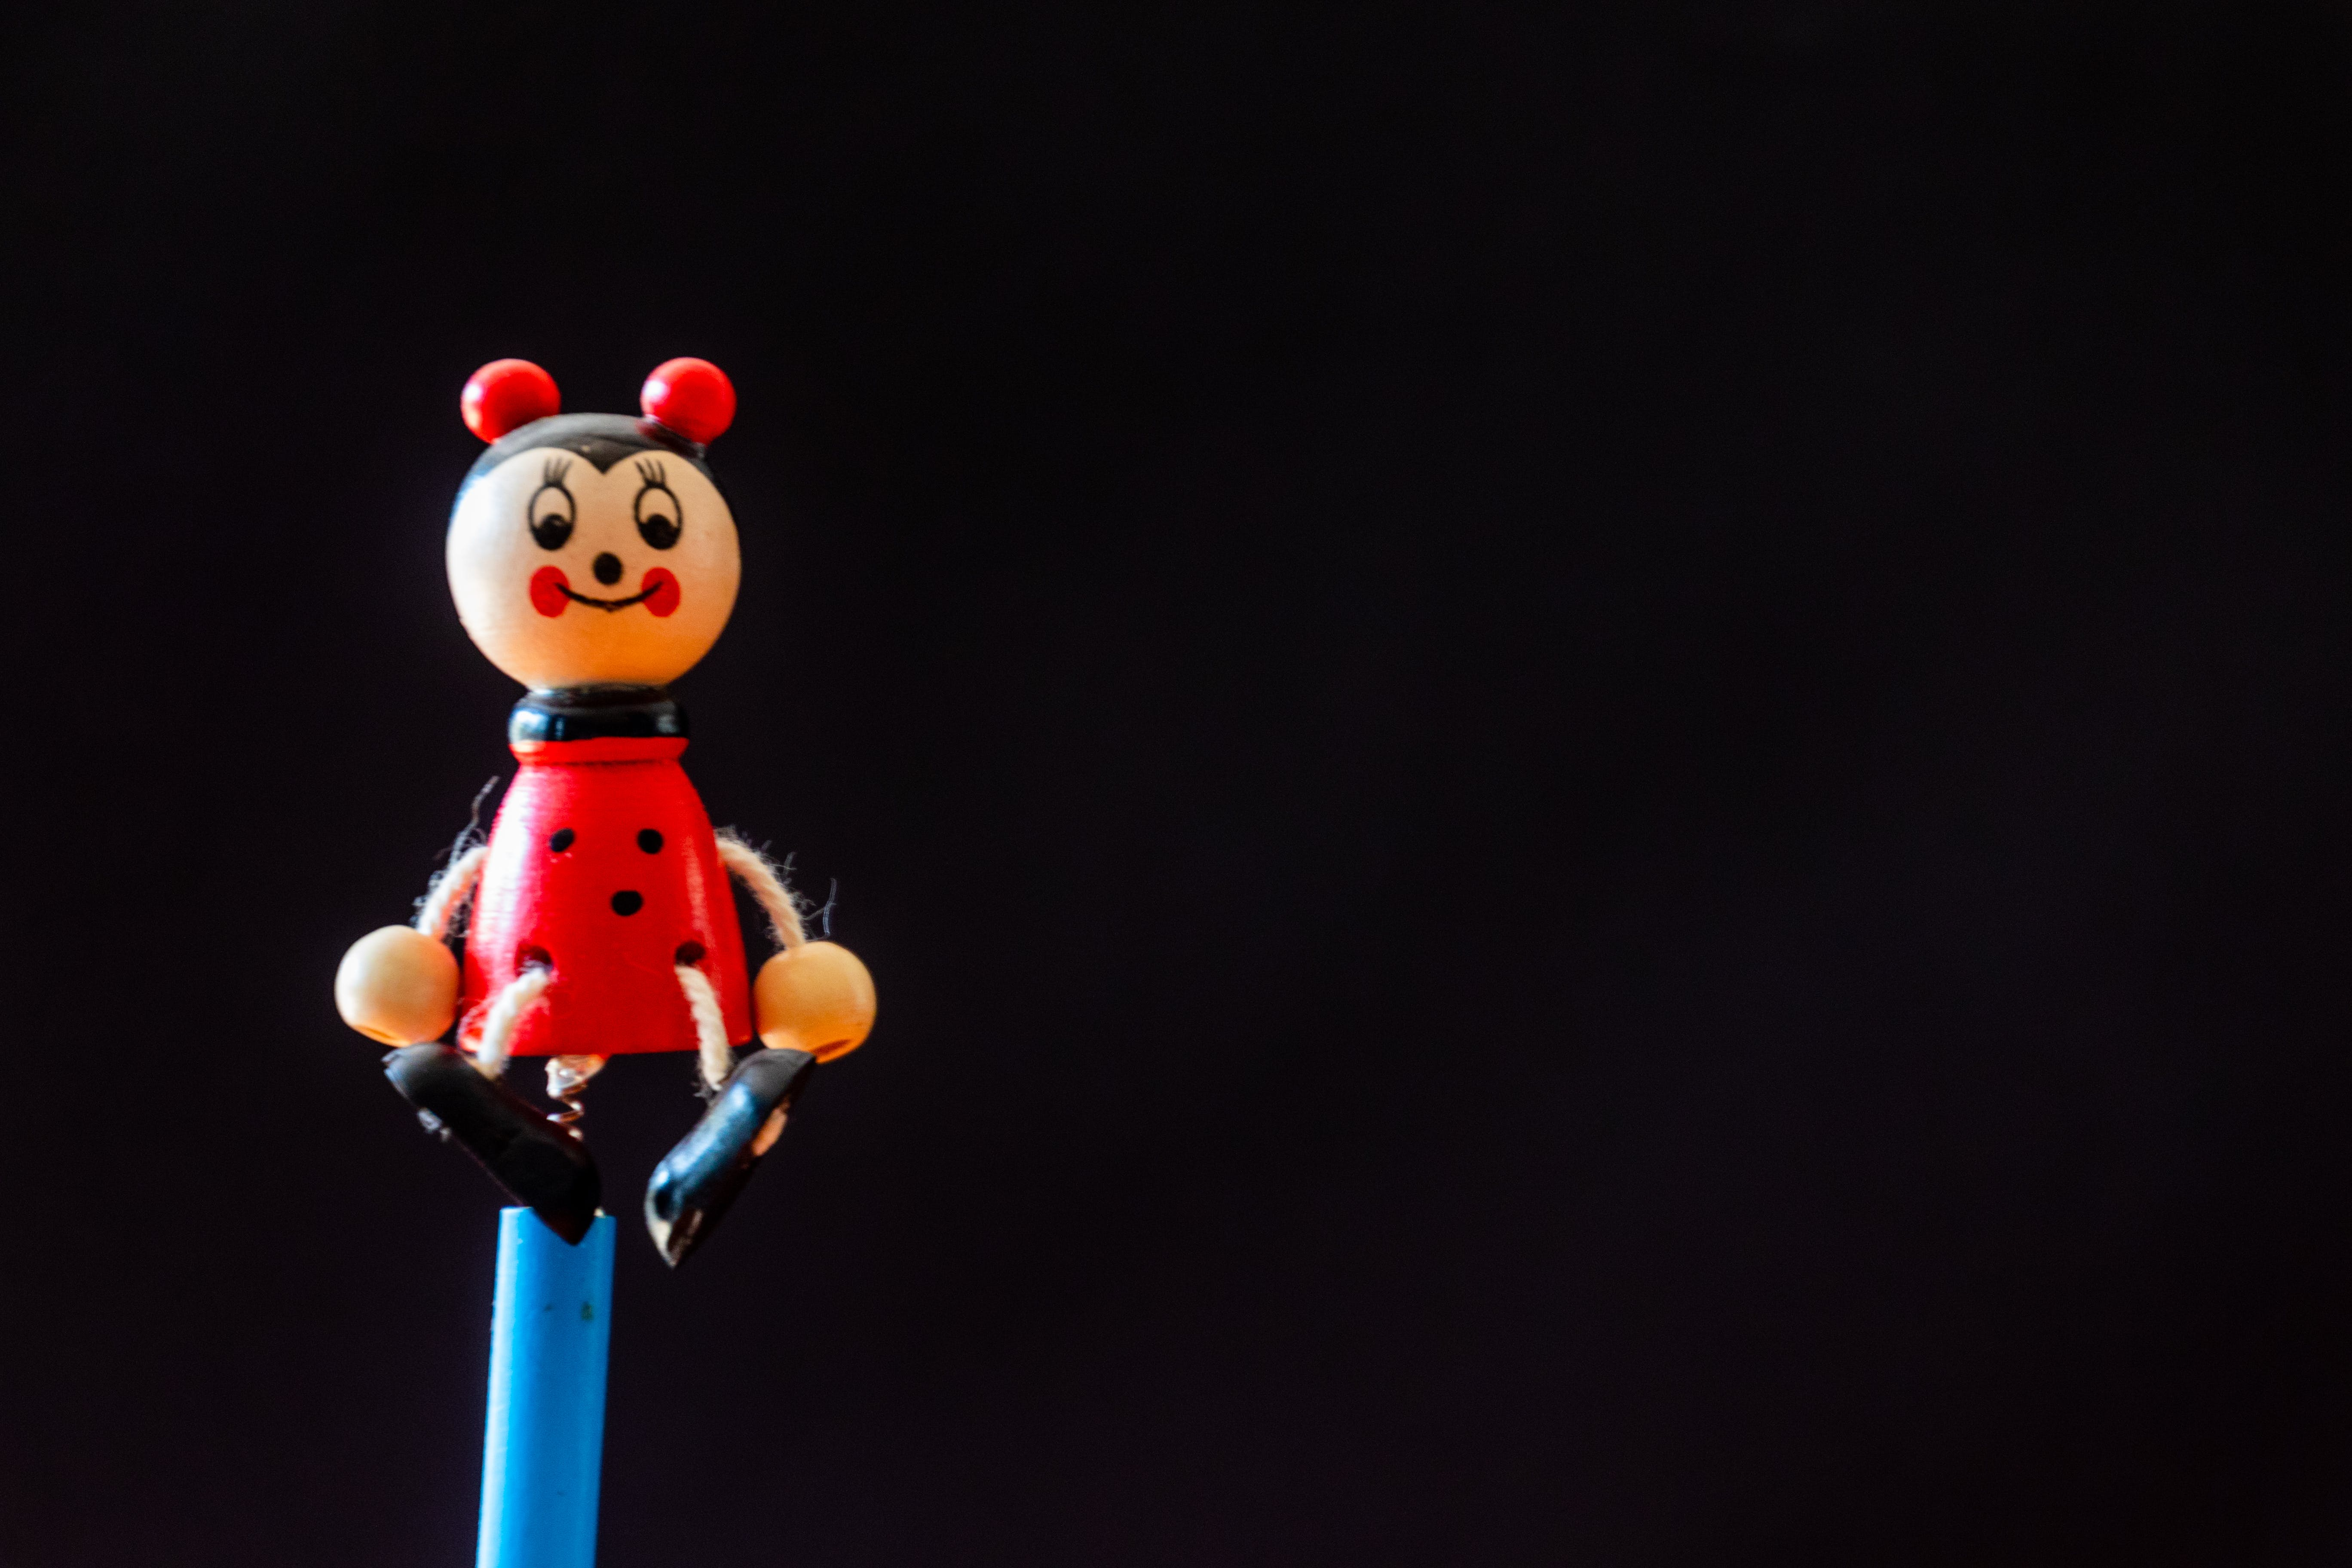 Red and Black Plastic Toy